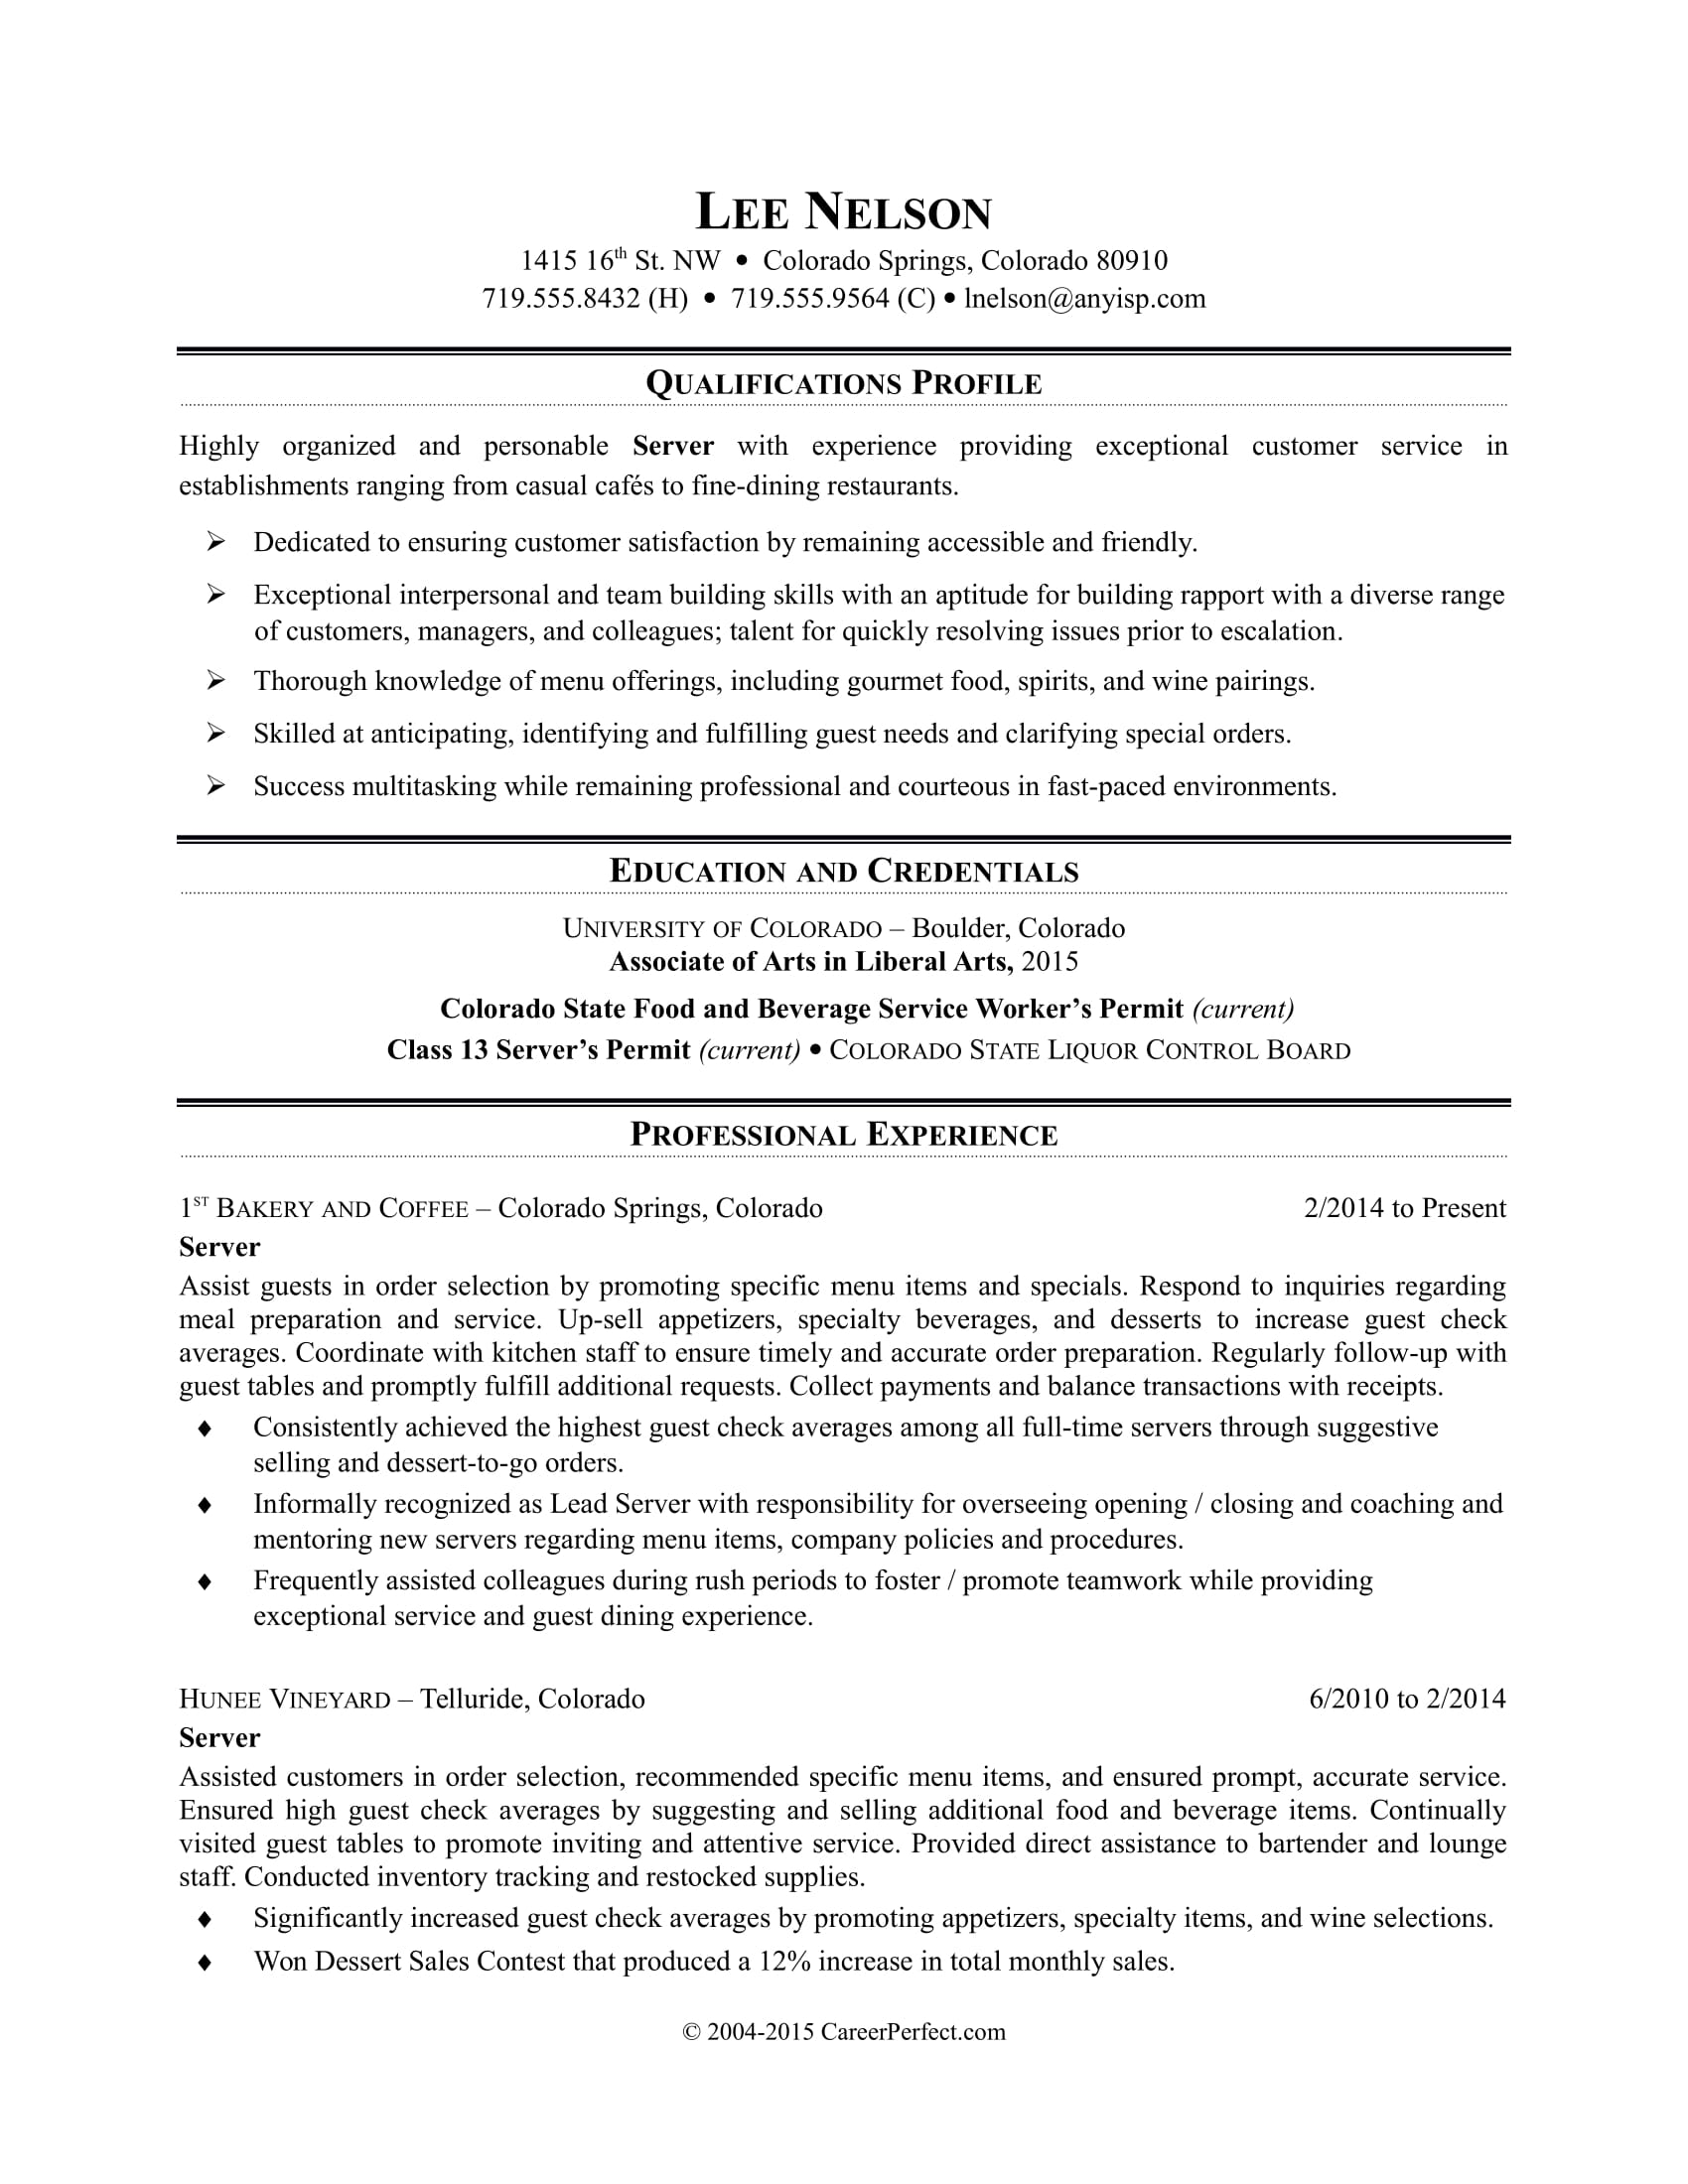 Sample Resume For A Restaurant Server  Sample Of Qualification In Resume